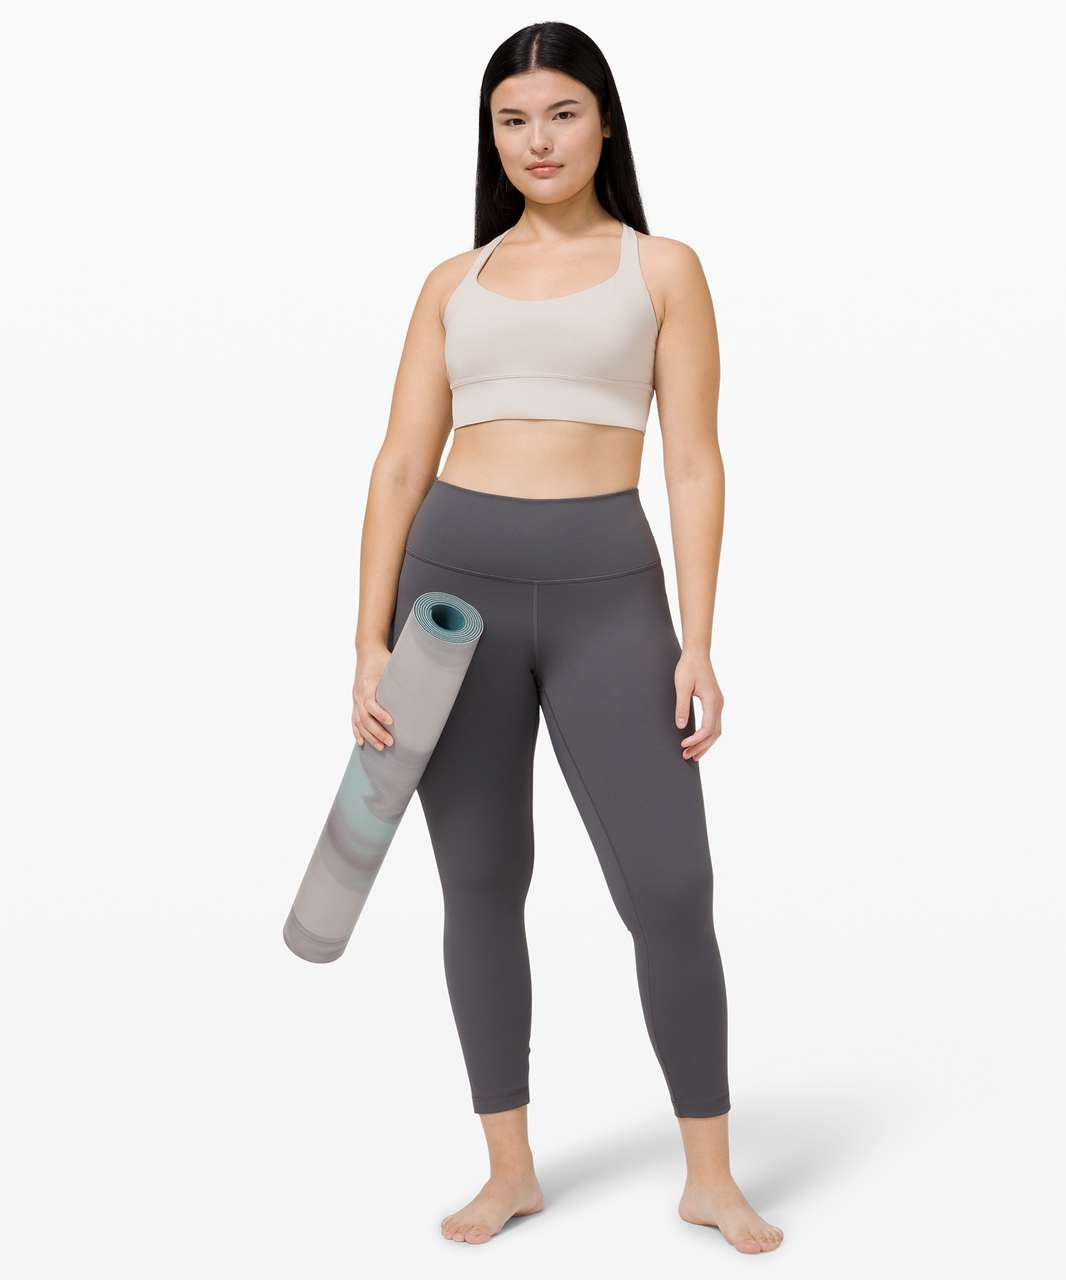 Lululemon Free to Be Bra Wild Long Line *Light Support, A/B Cup - Chrome